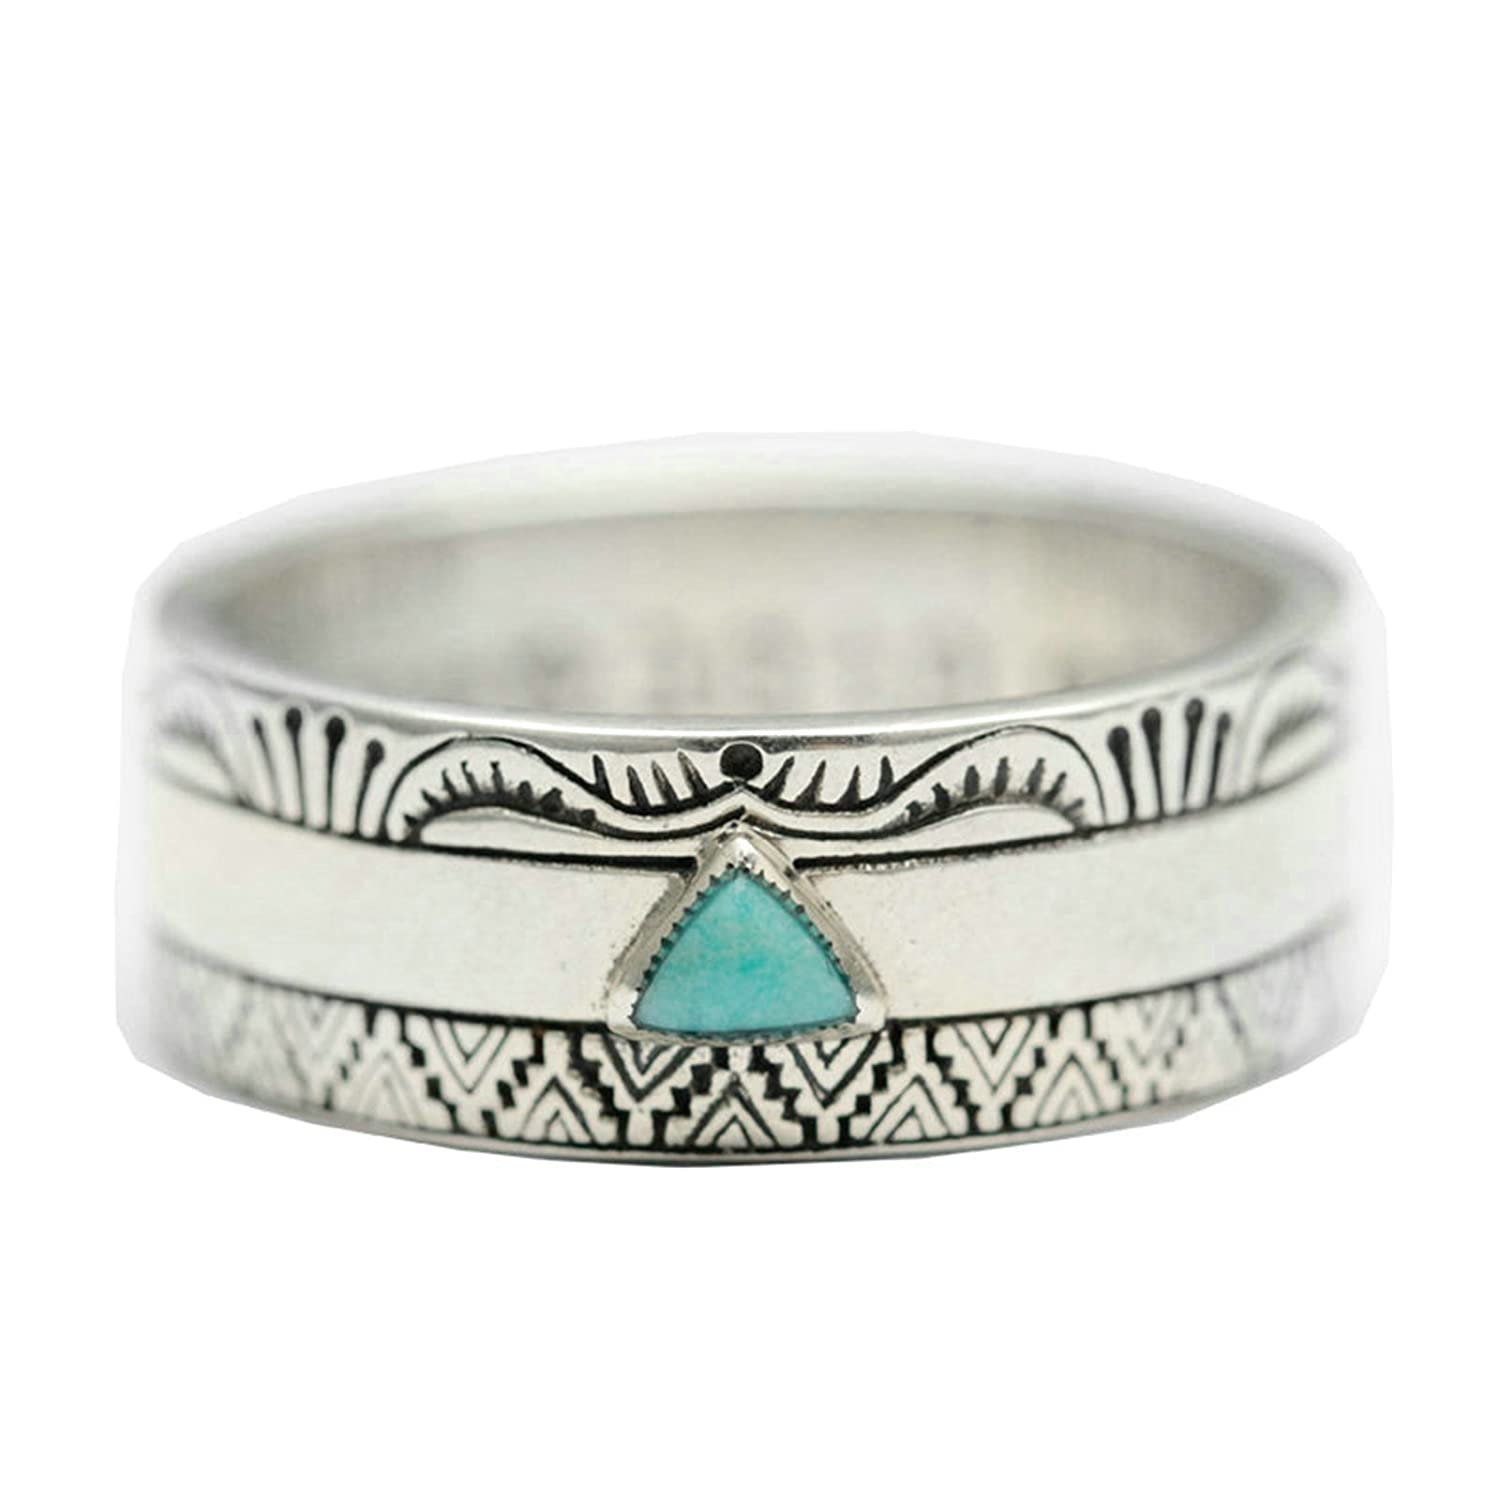 Epinki 925 Sterling Silver Punk Rock Vintage Gothic Indian Turquoise Ring for Women ZGF91RI0103